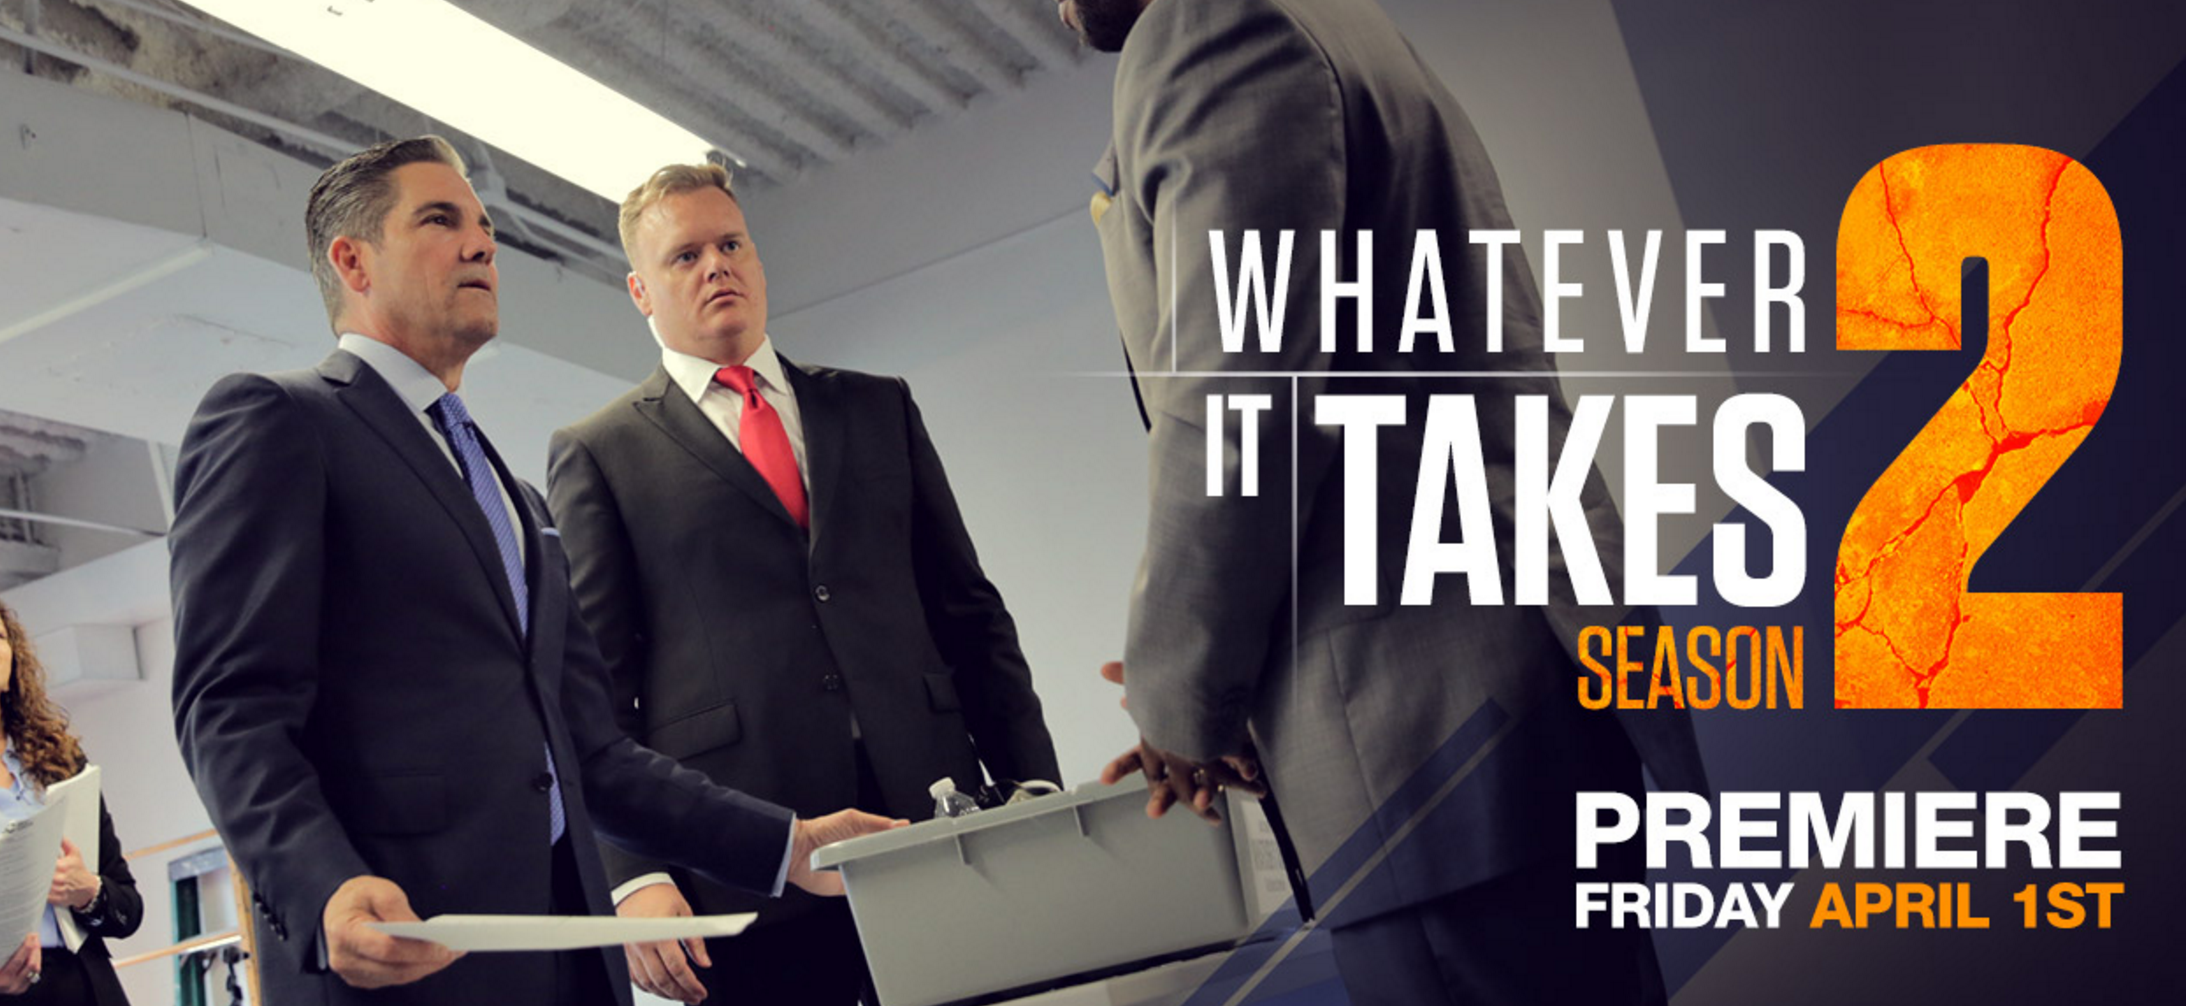 grant cardone whatever it takes season two whatever it takes season 2 of the ultimate job interview